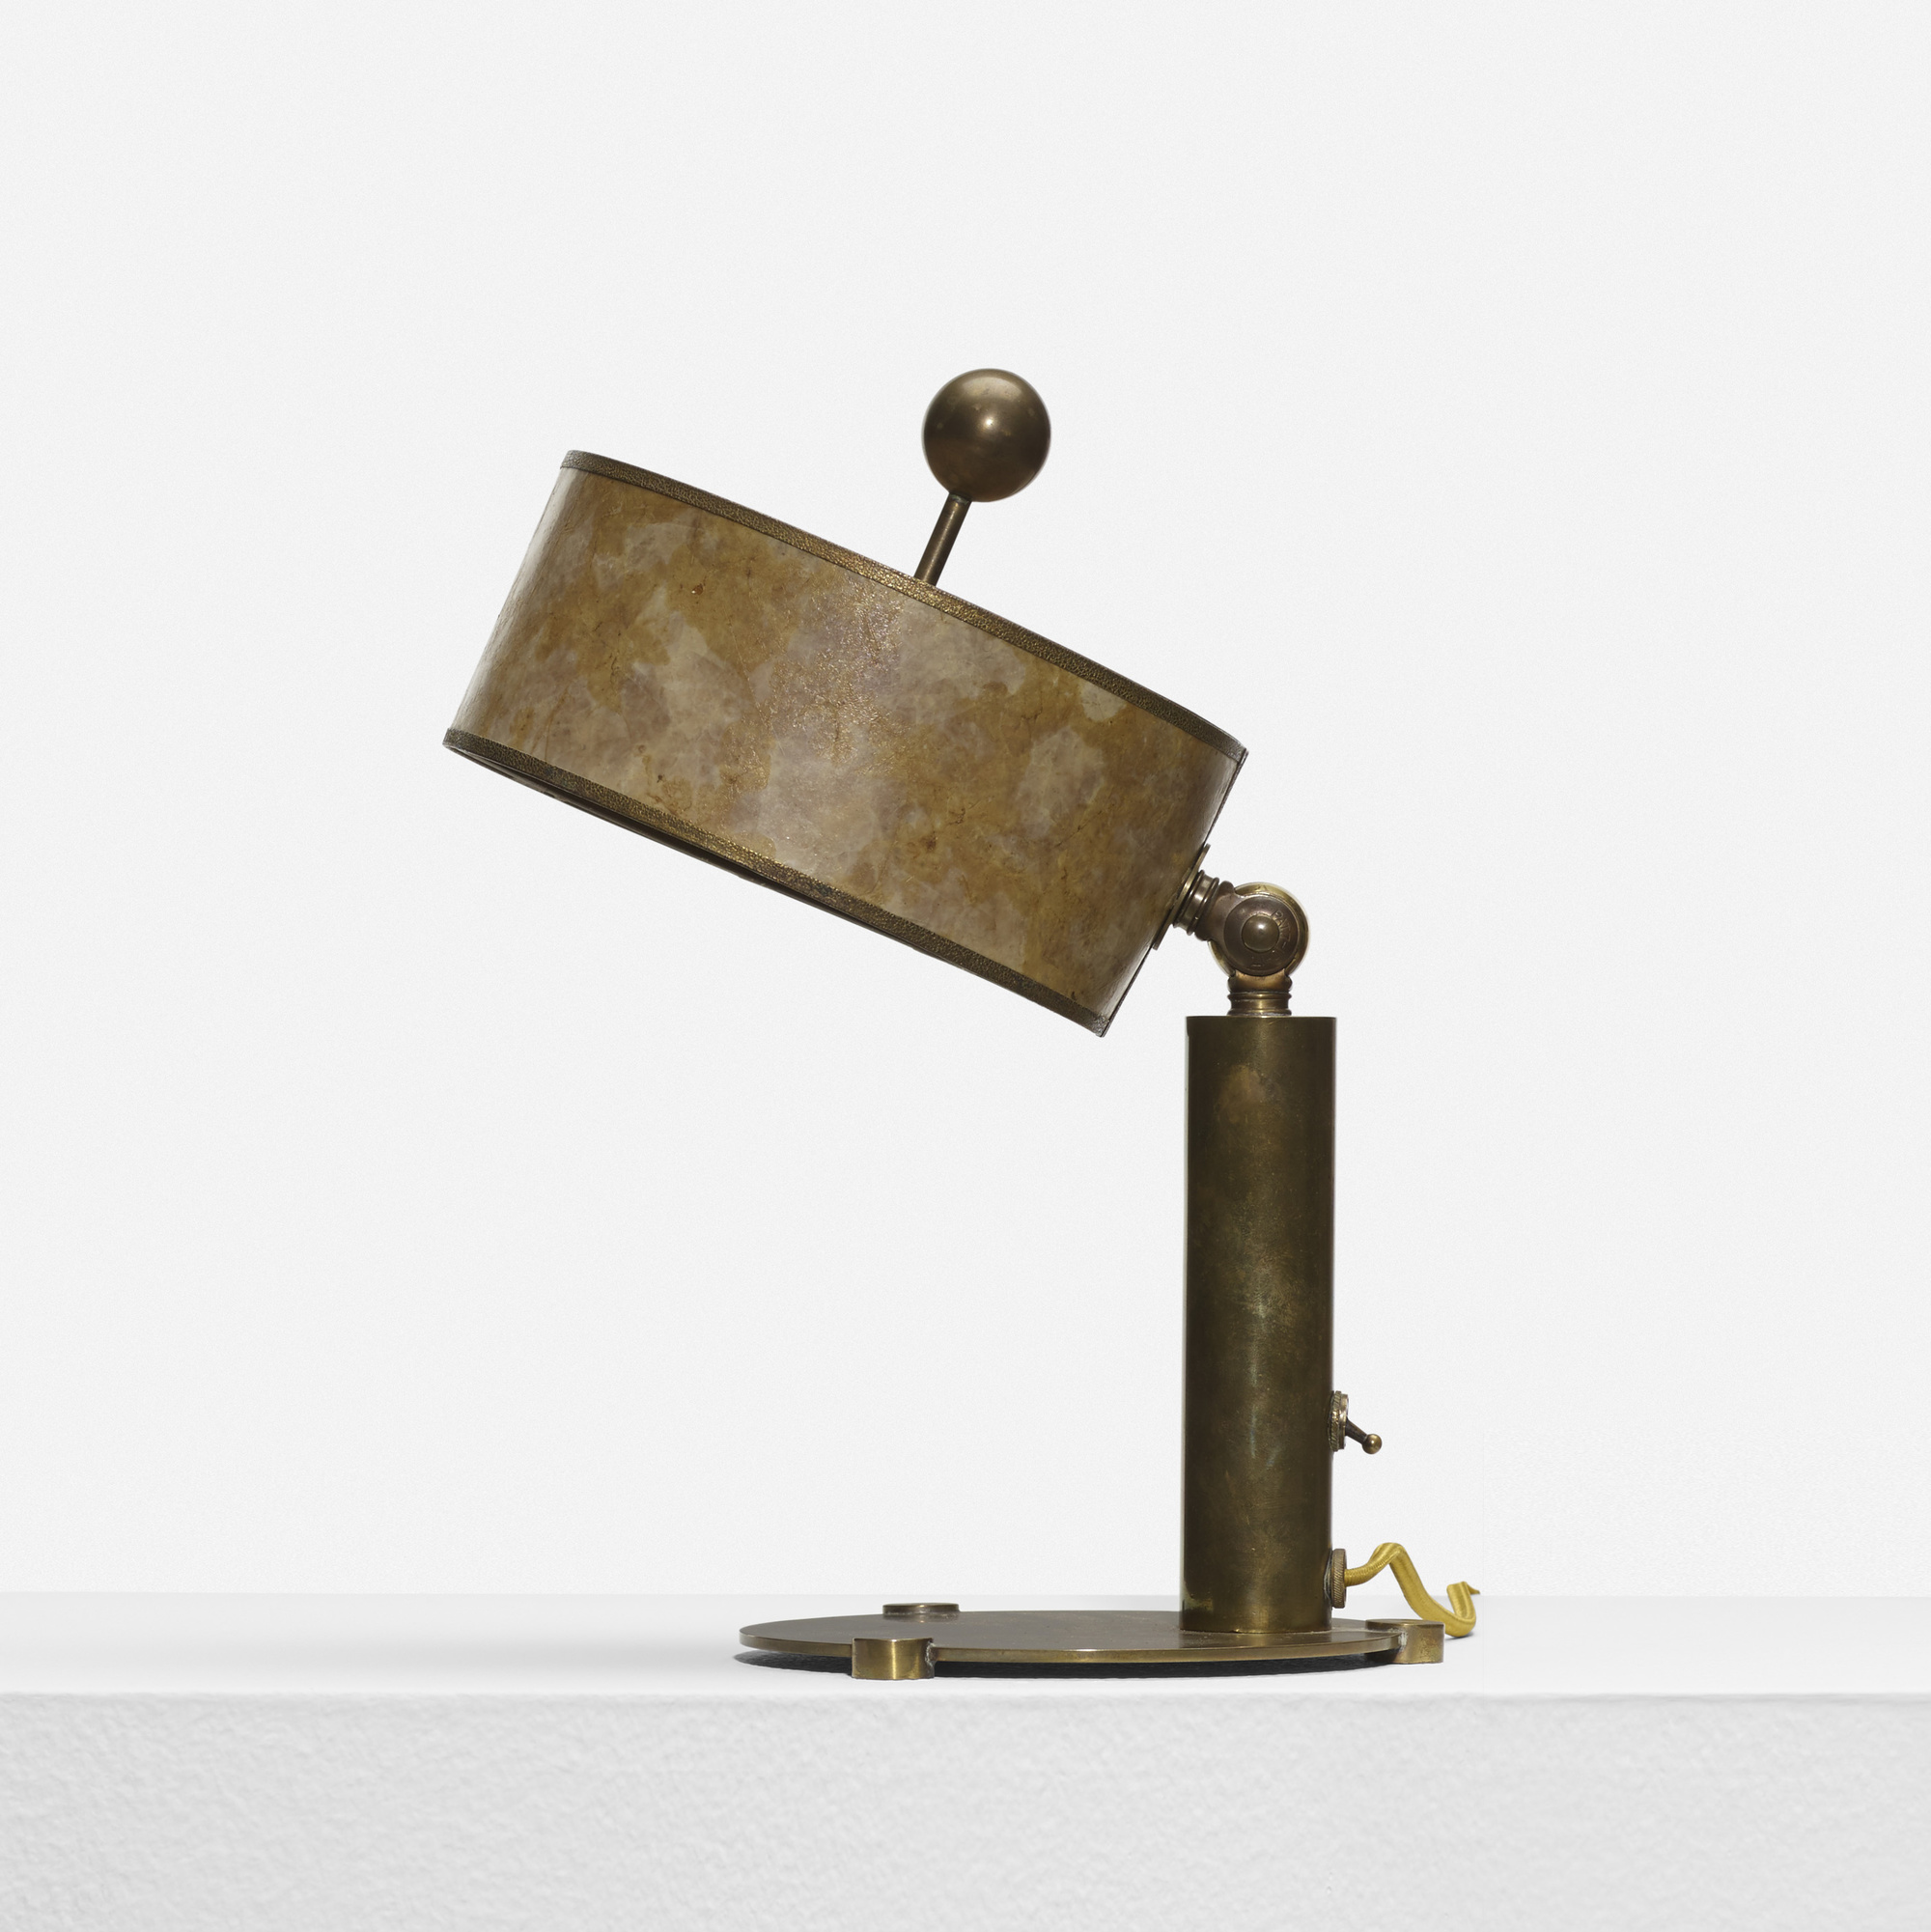 274: Donald Deskey / table lamp (1 of 2)